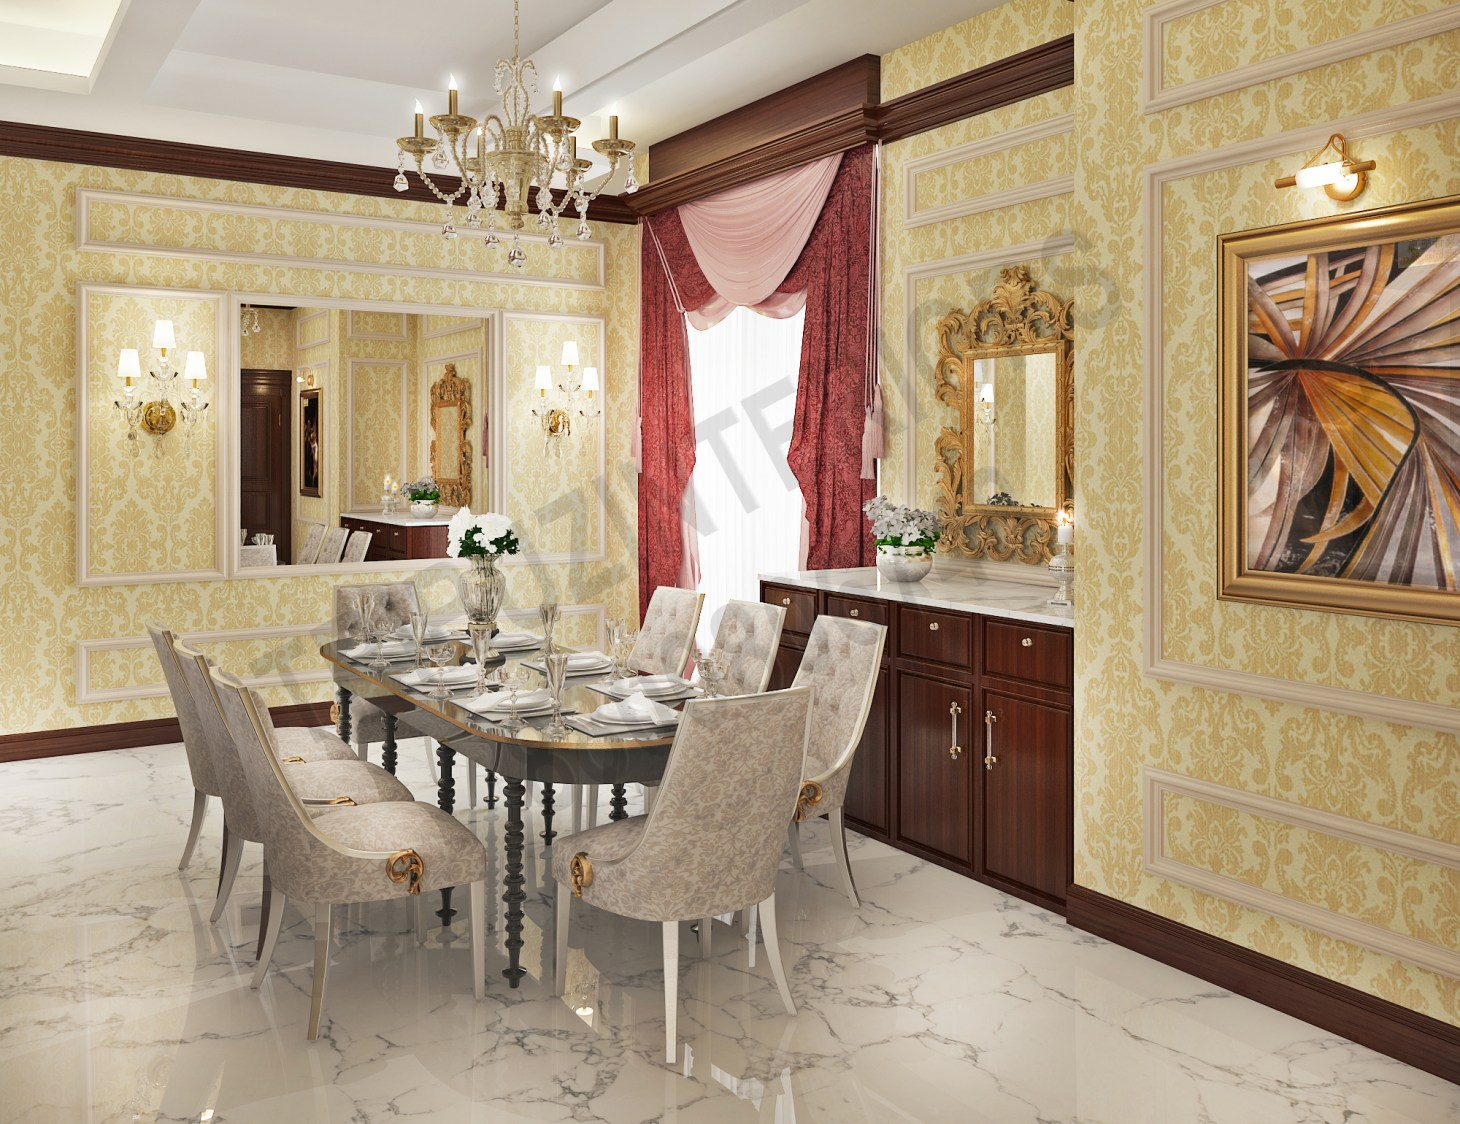 Lavish Dining Room With Beautiful Dining Set And Wall Art by Tribuz Interiors Pvt. Ltd. Dining-room Vintage | Interior Design Photos & Ideas